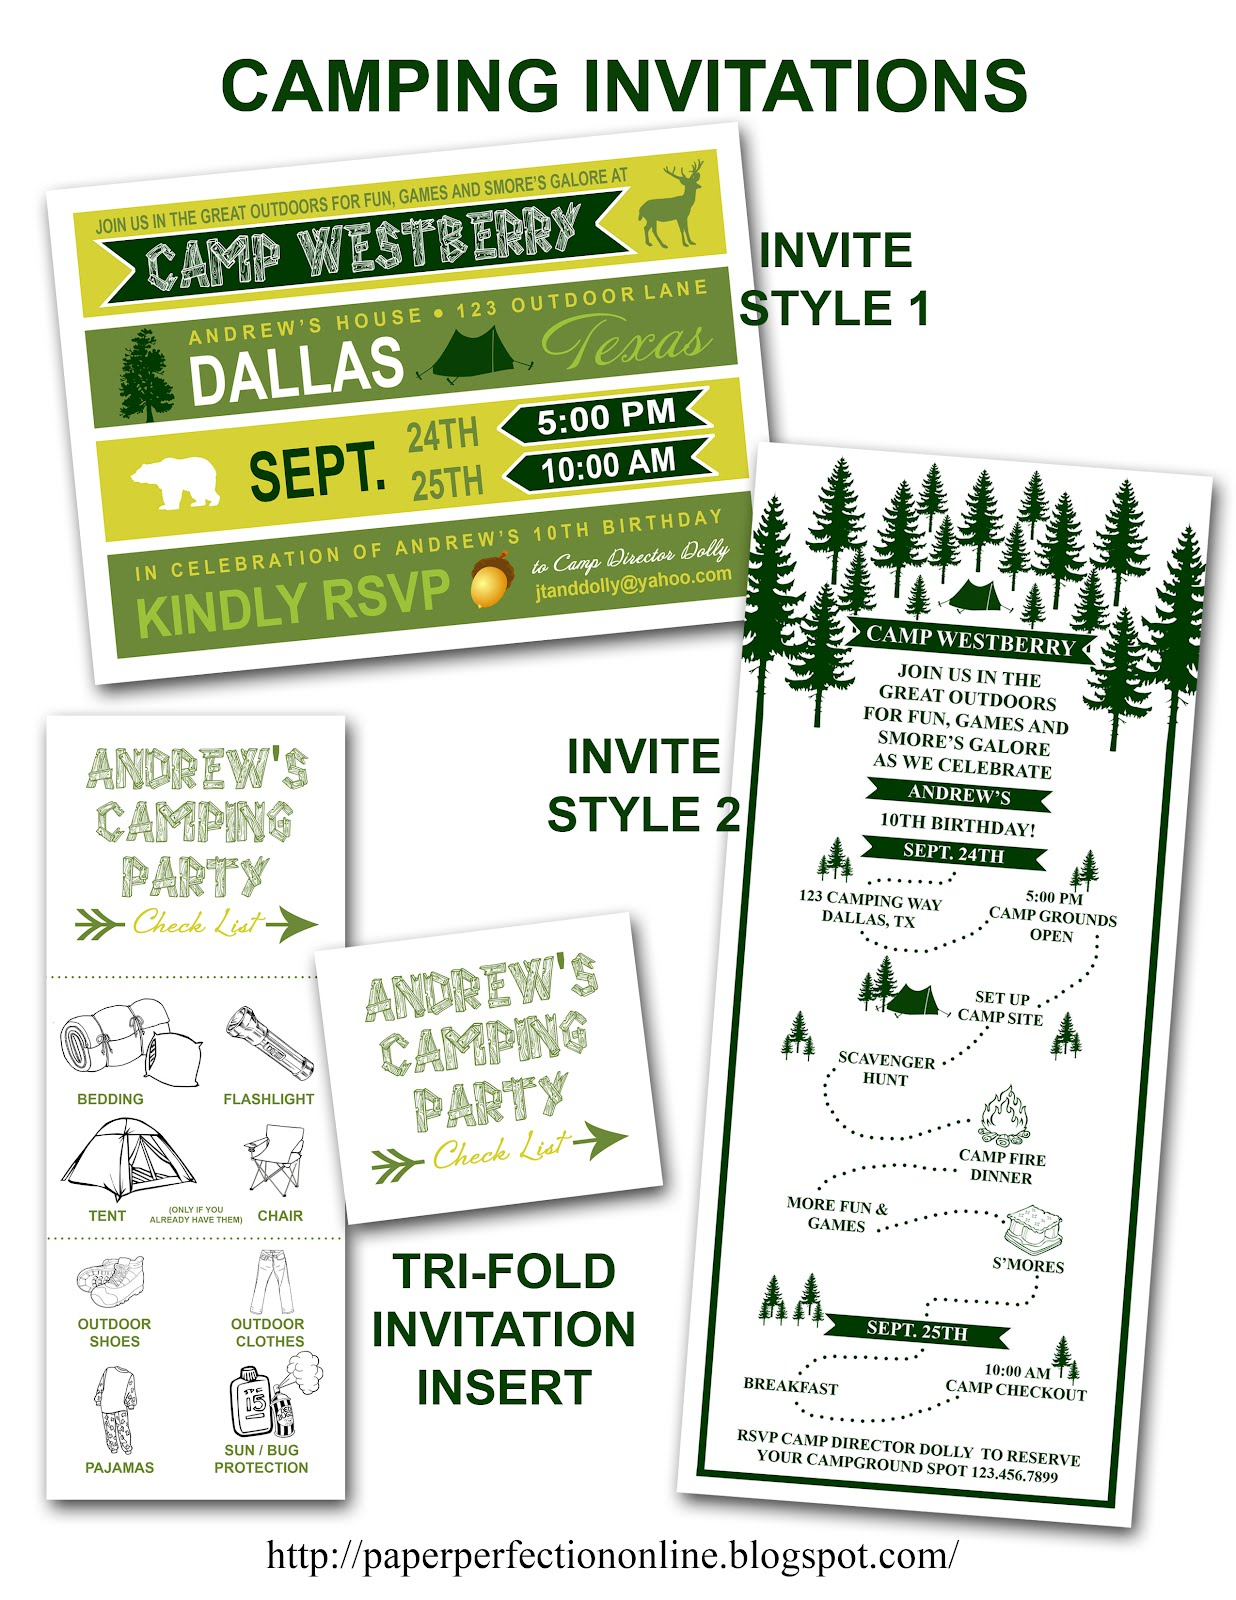 Paper Perfection: Camping Party Invitation